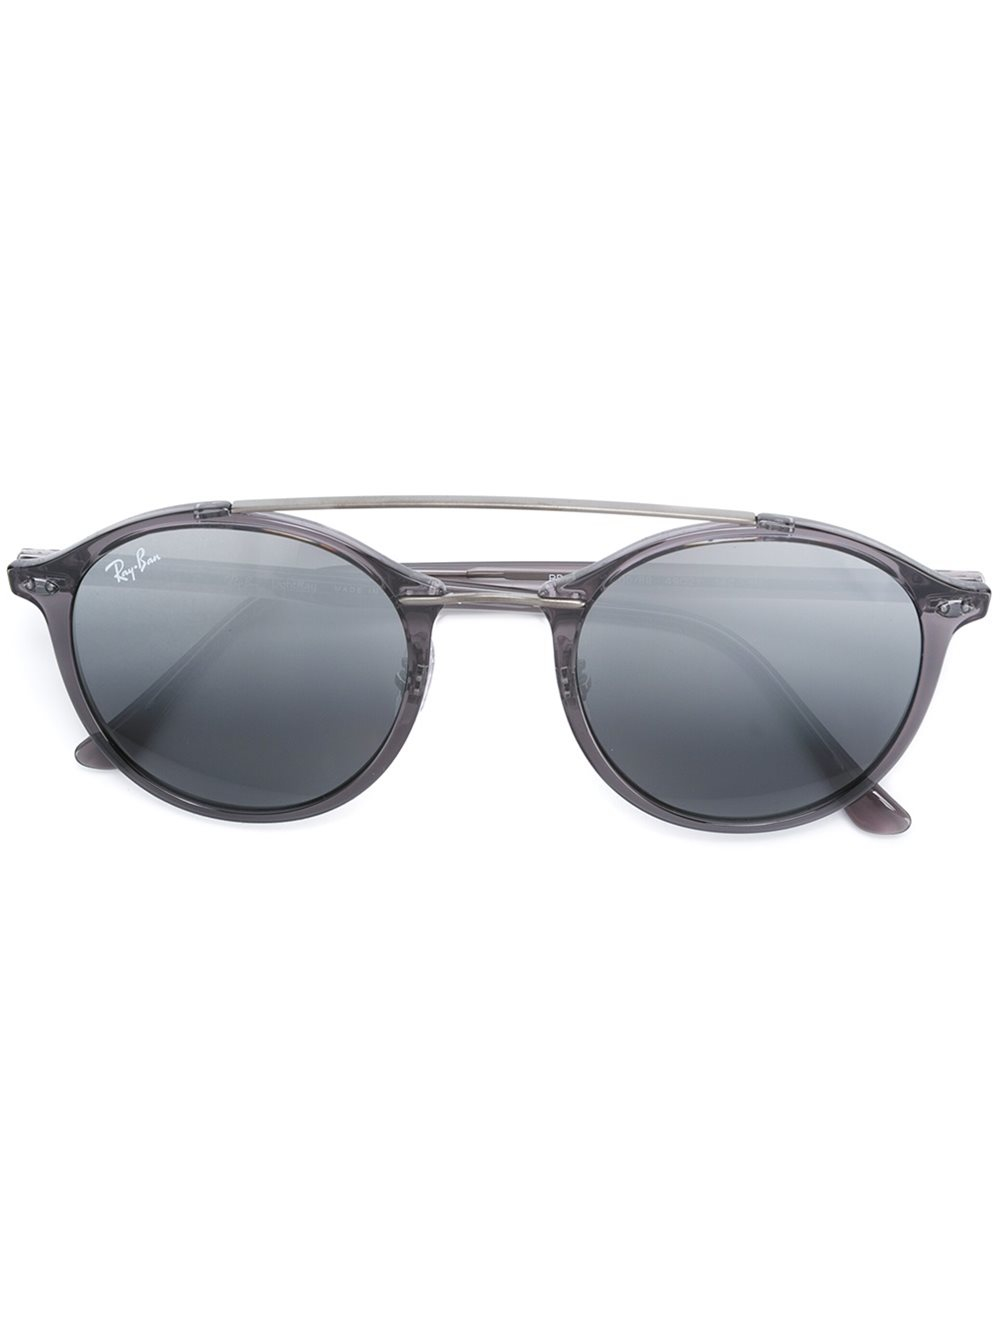 Ray Ban Round Frame Sunglasses : Ray-ban Round Frame Sunglasses in Gray (GREY) Lyst